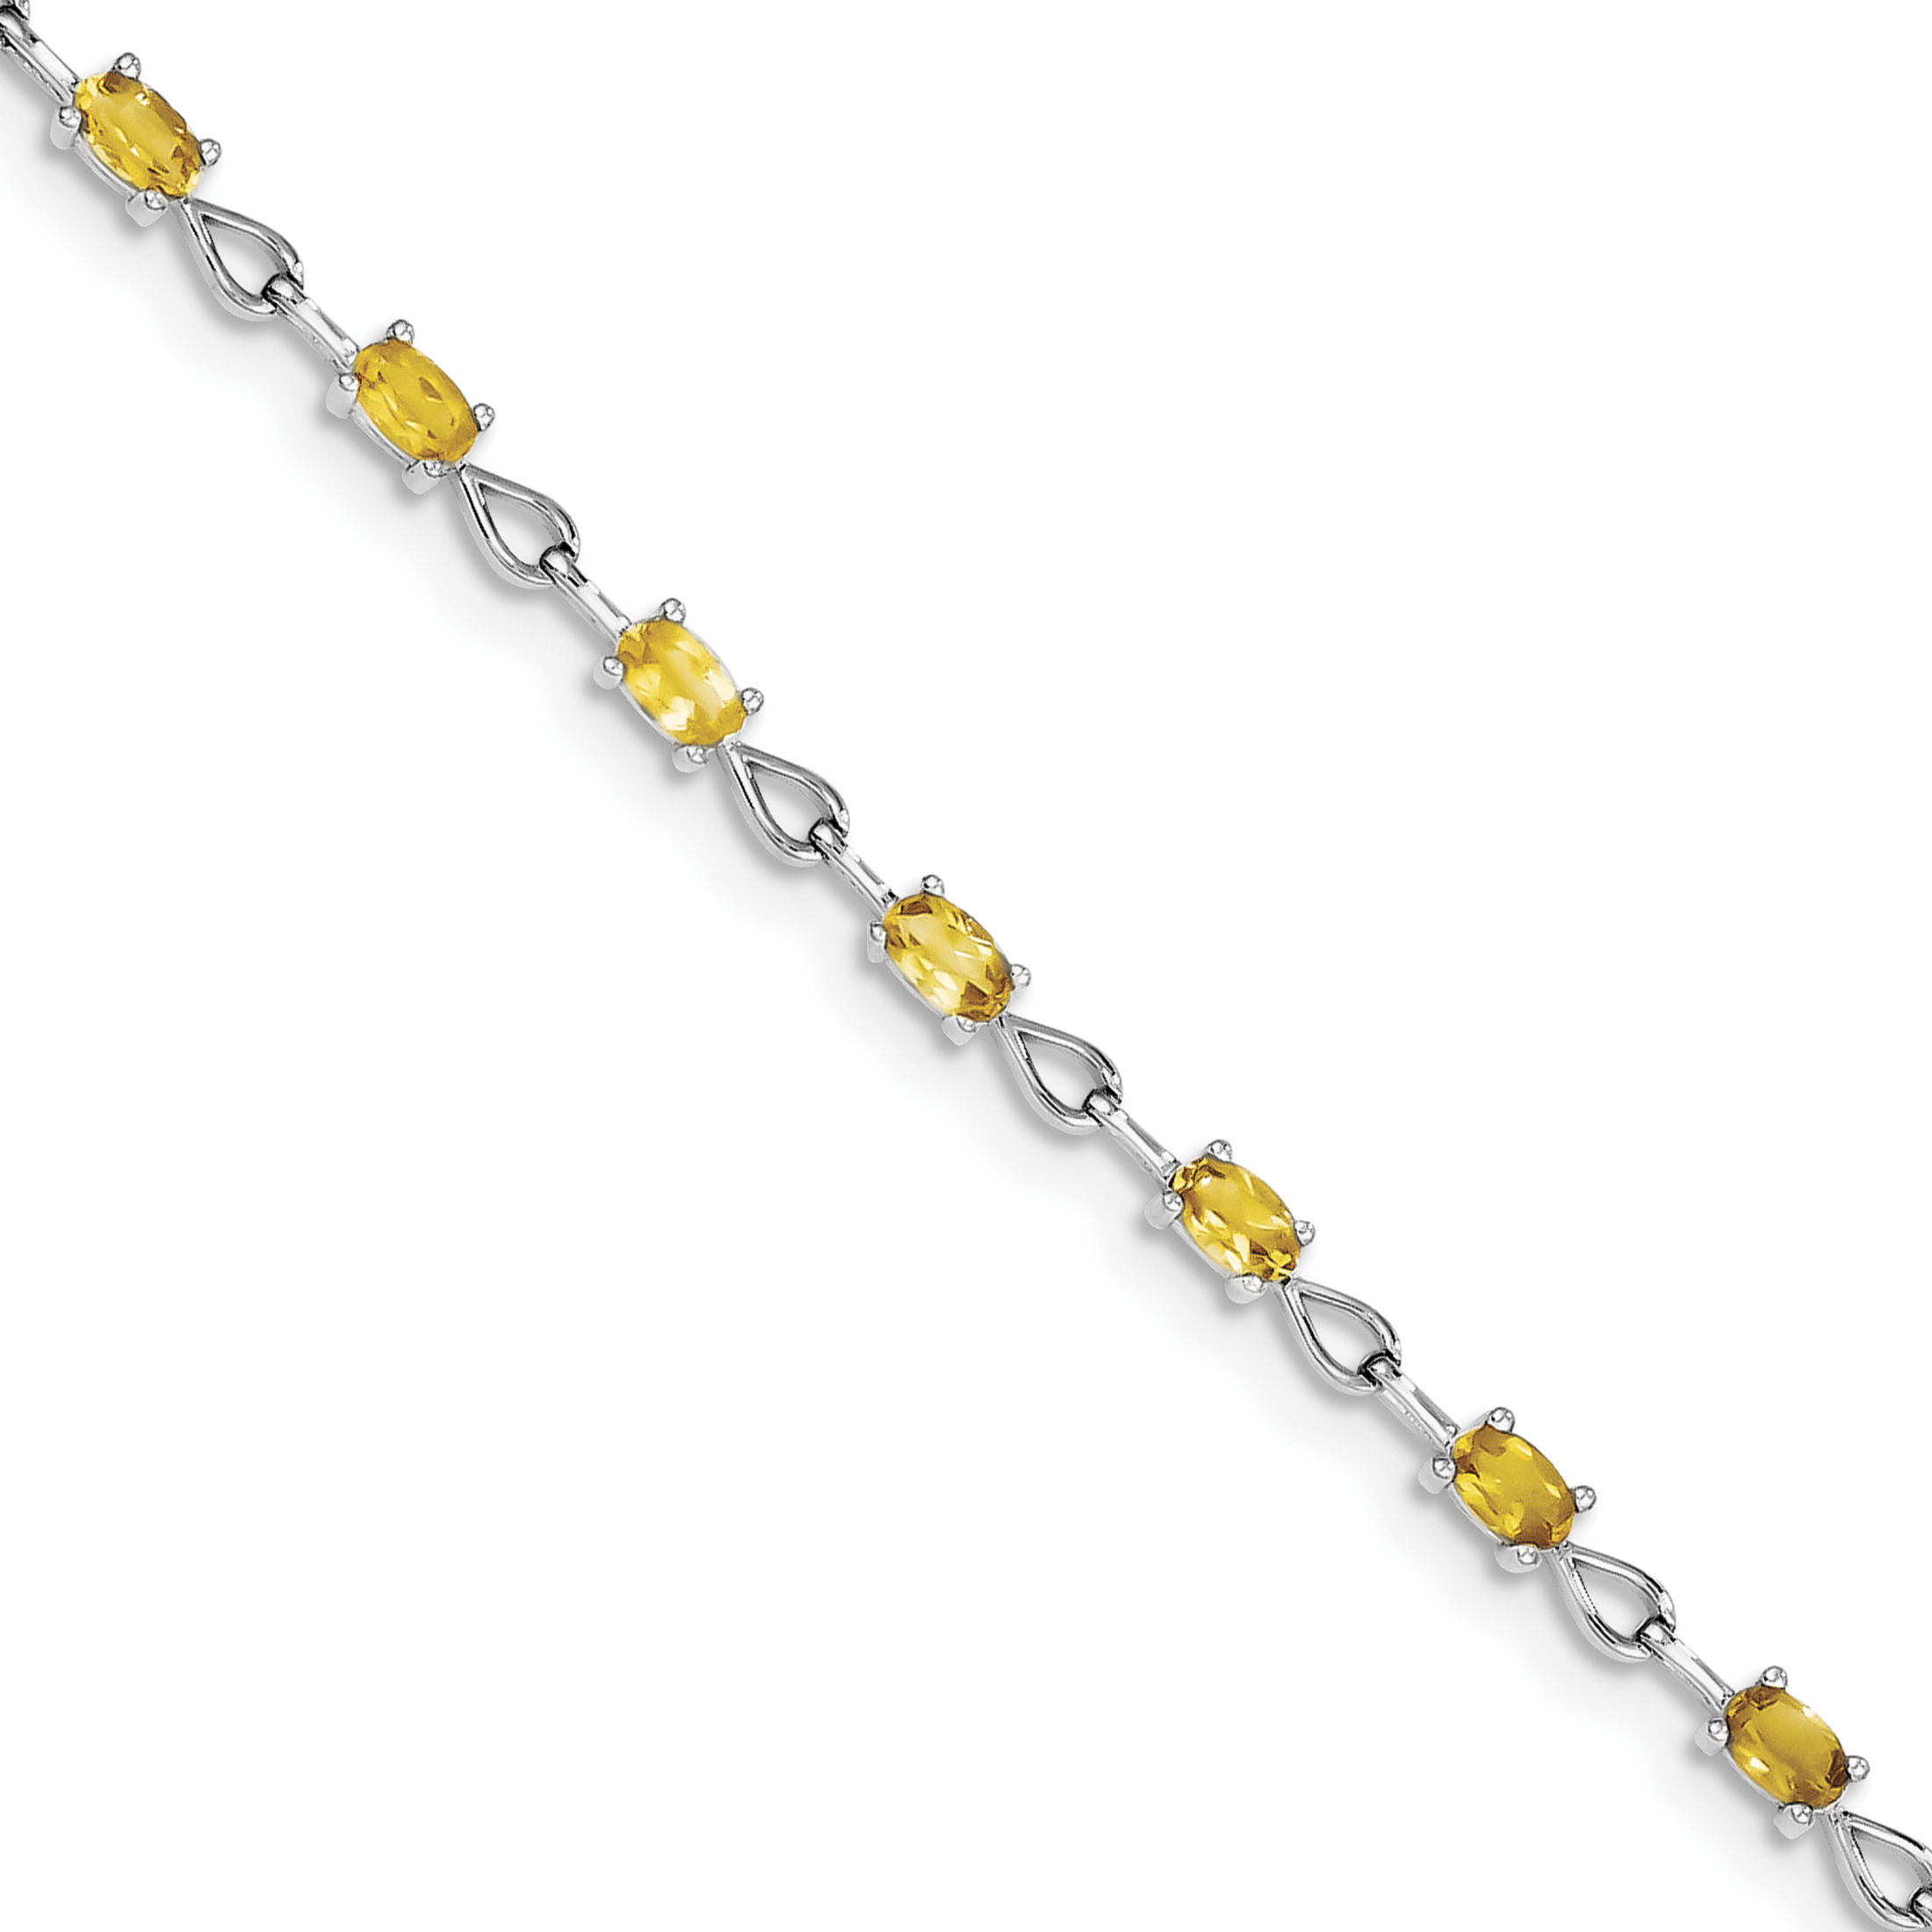 Roy Rose Jewelry Sterling Silver Citrine Bracelet ~ Length 7.5'' inches by